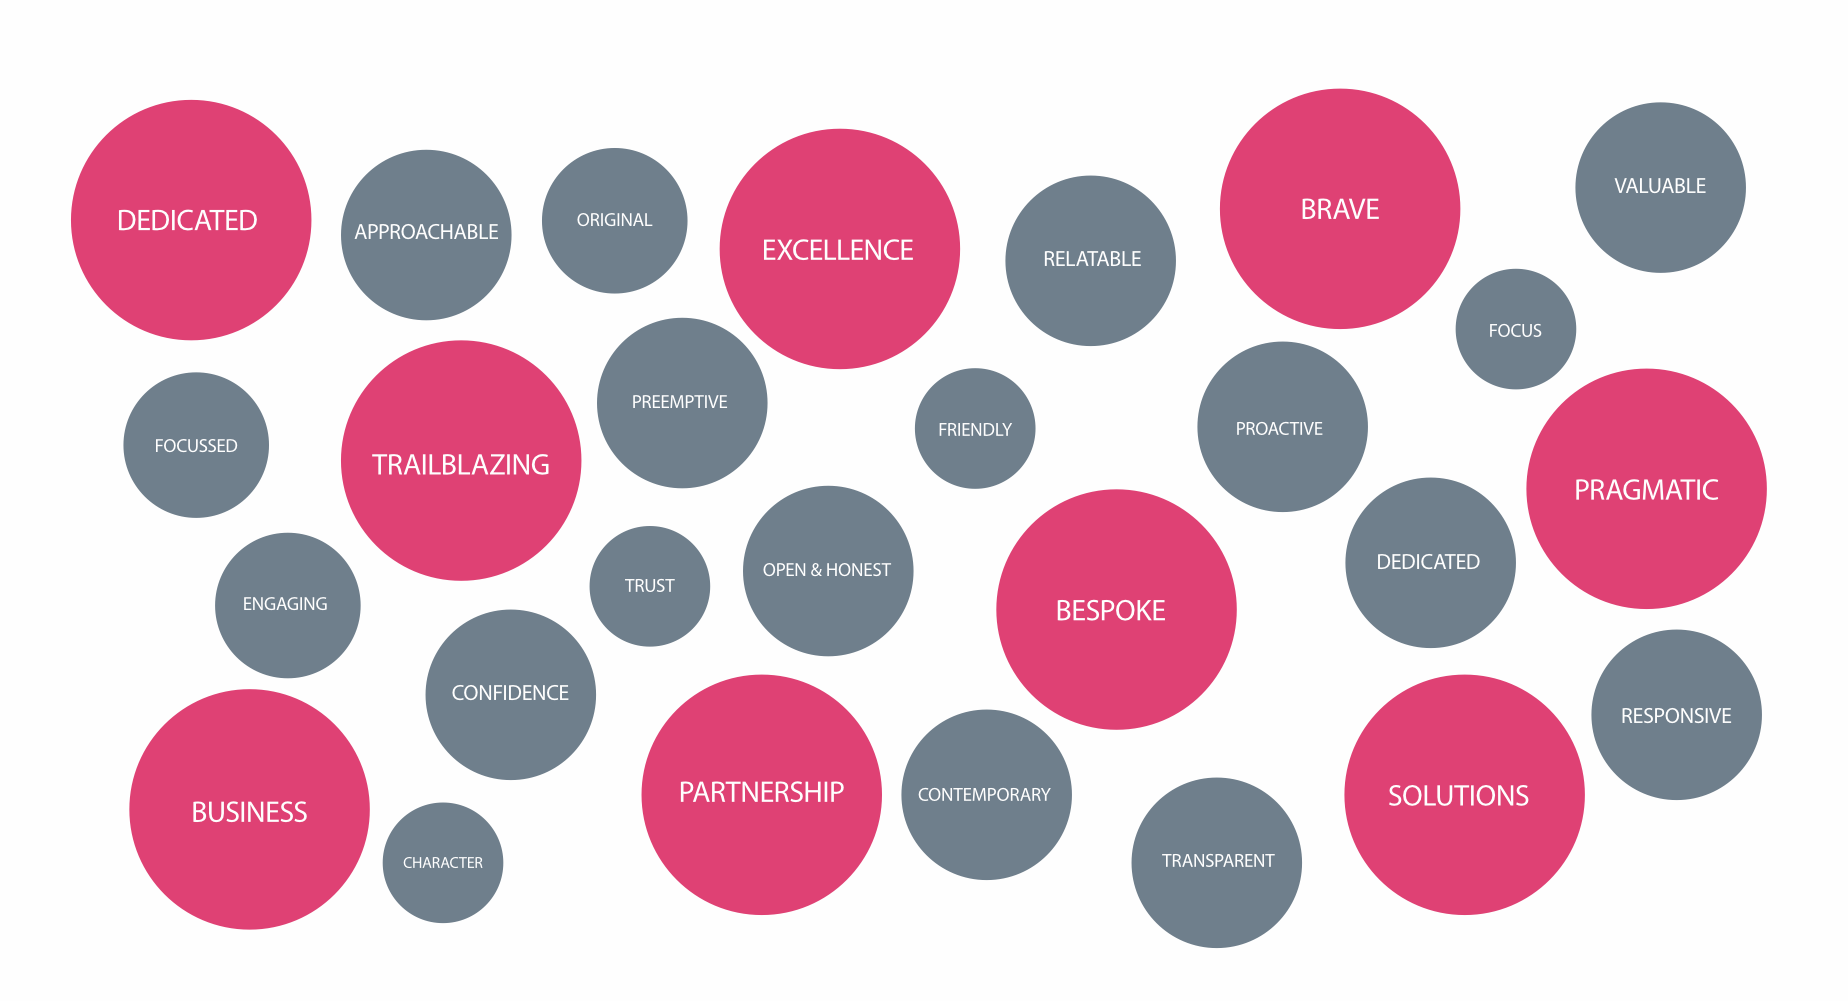 BetterBrandBuilder™ - DISCOVER Brand Keywords - Endeavour Partnership